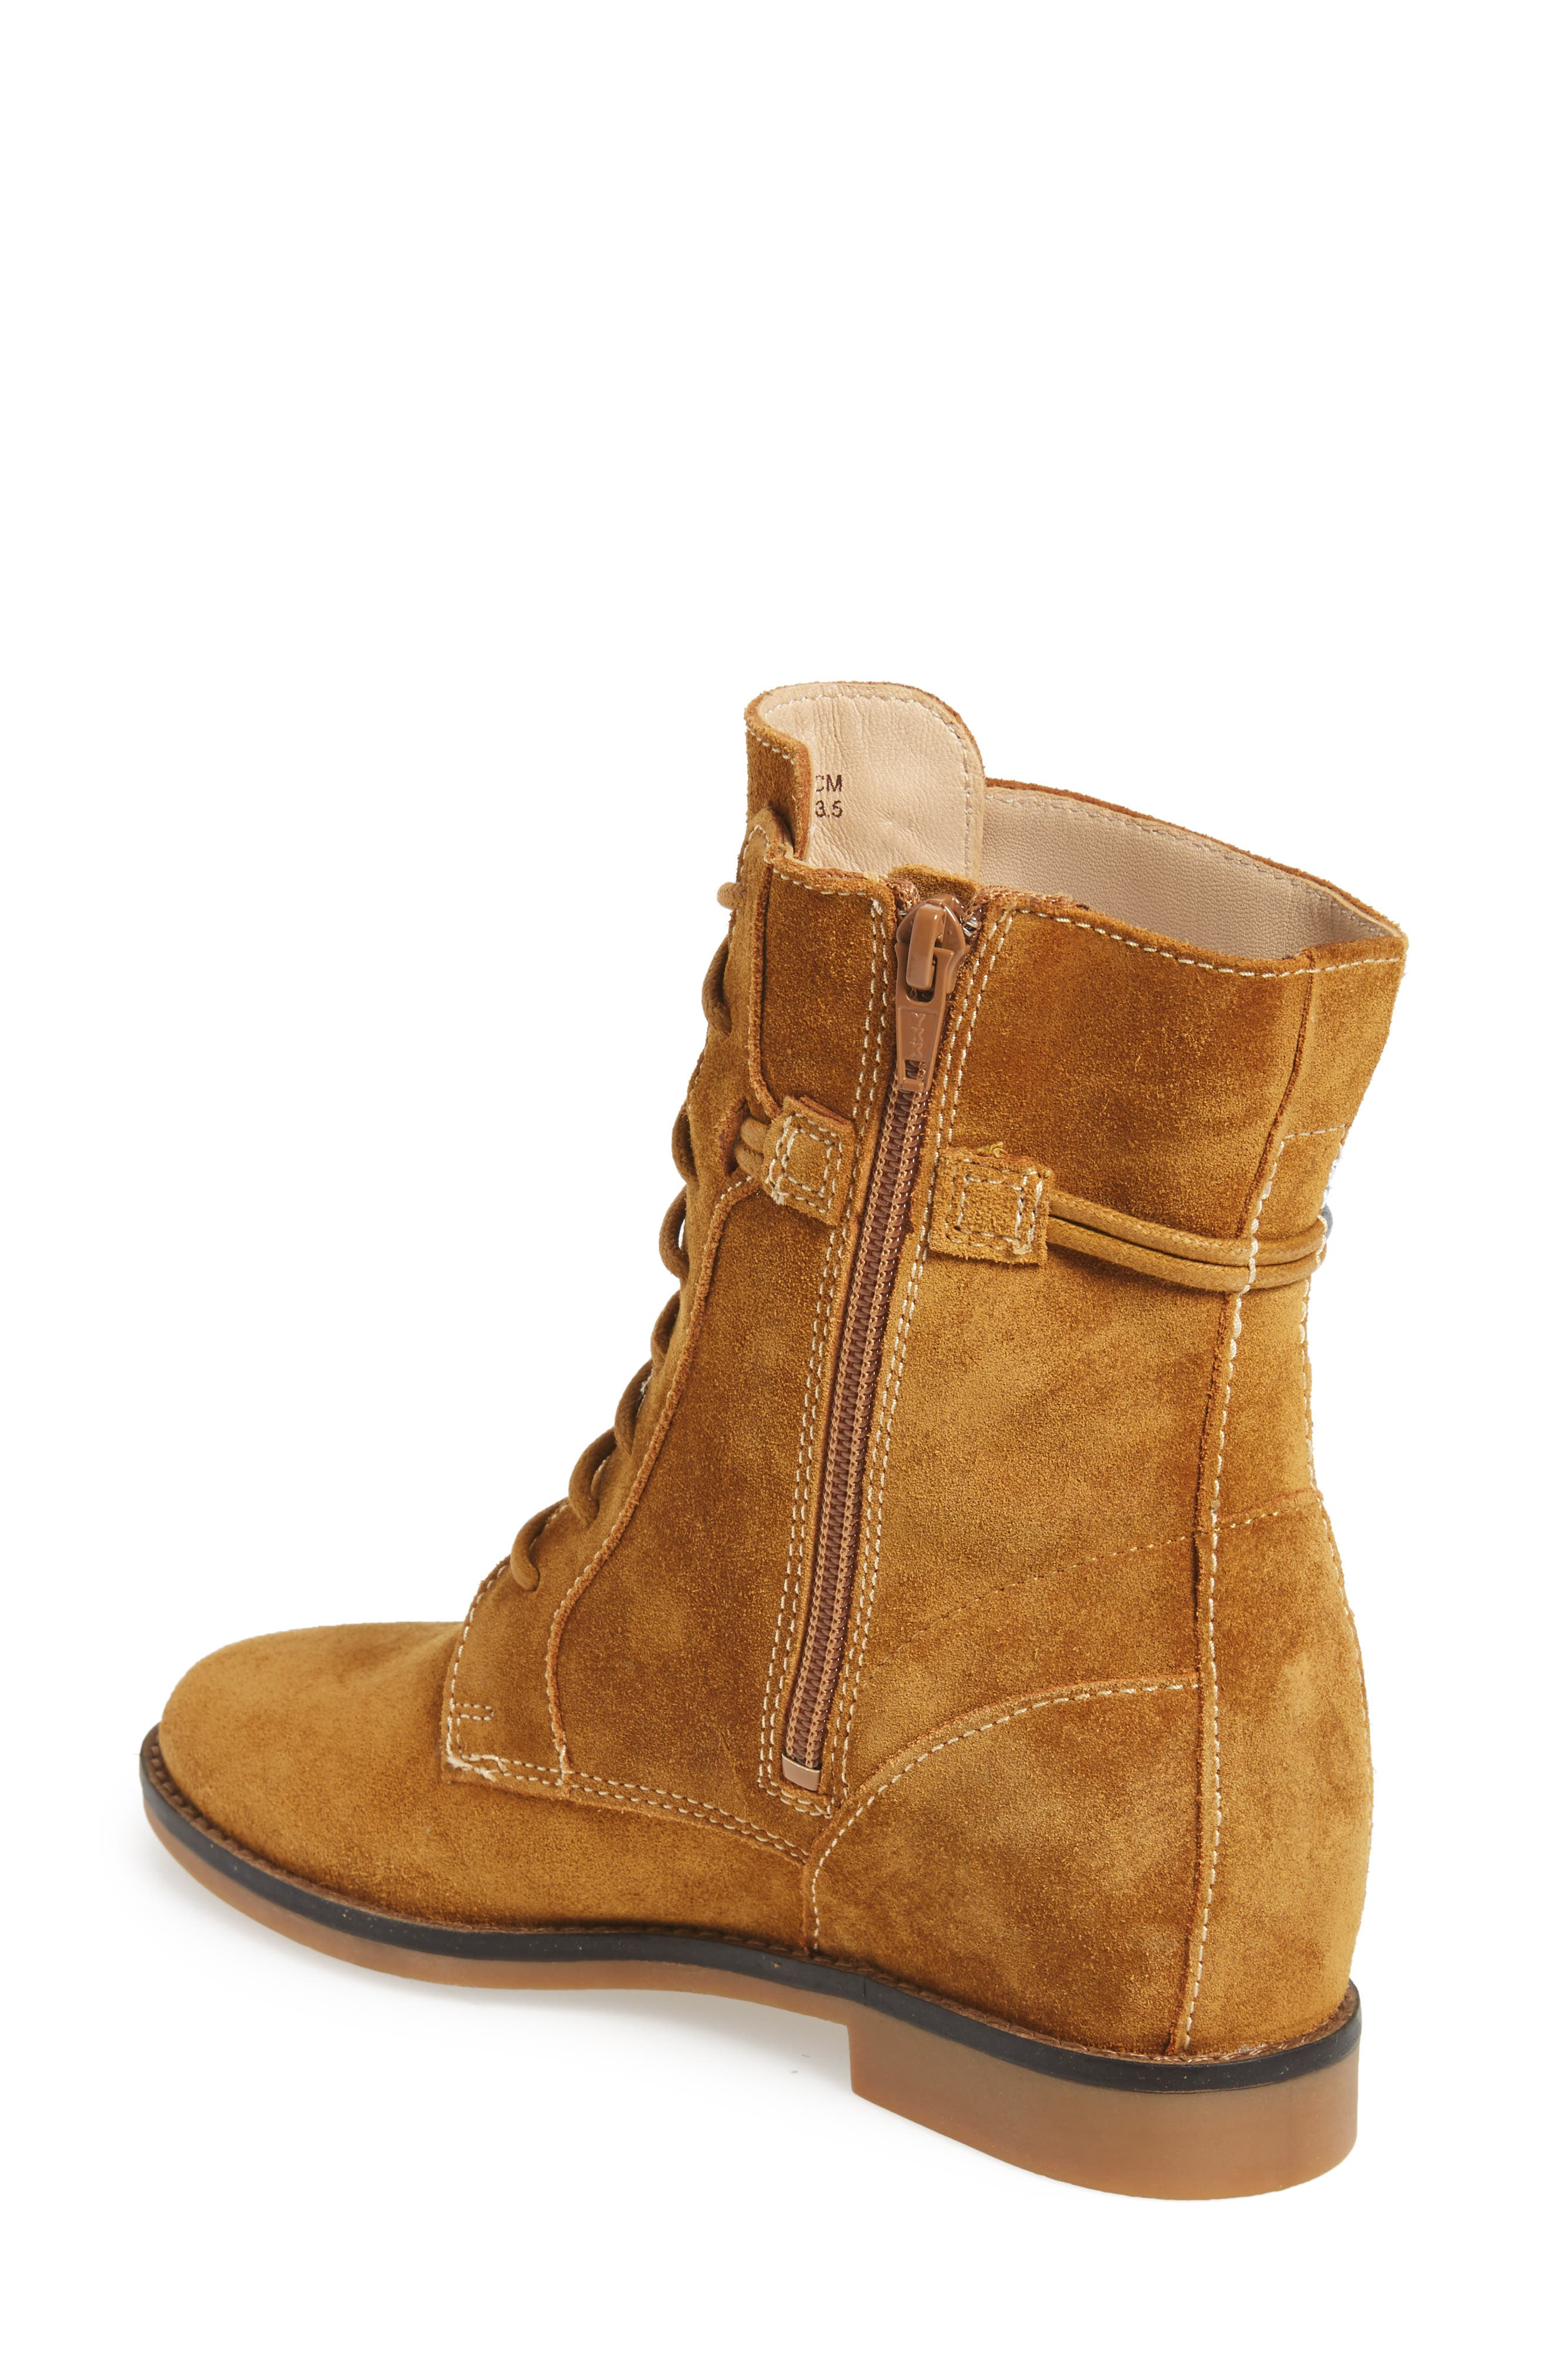 Bab Felise Boot,                             Alternate thumbnail 3, color,                             Camel Suede